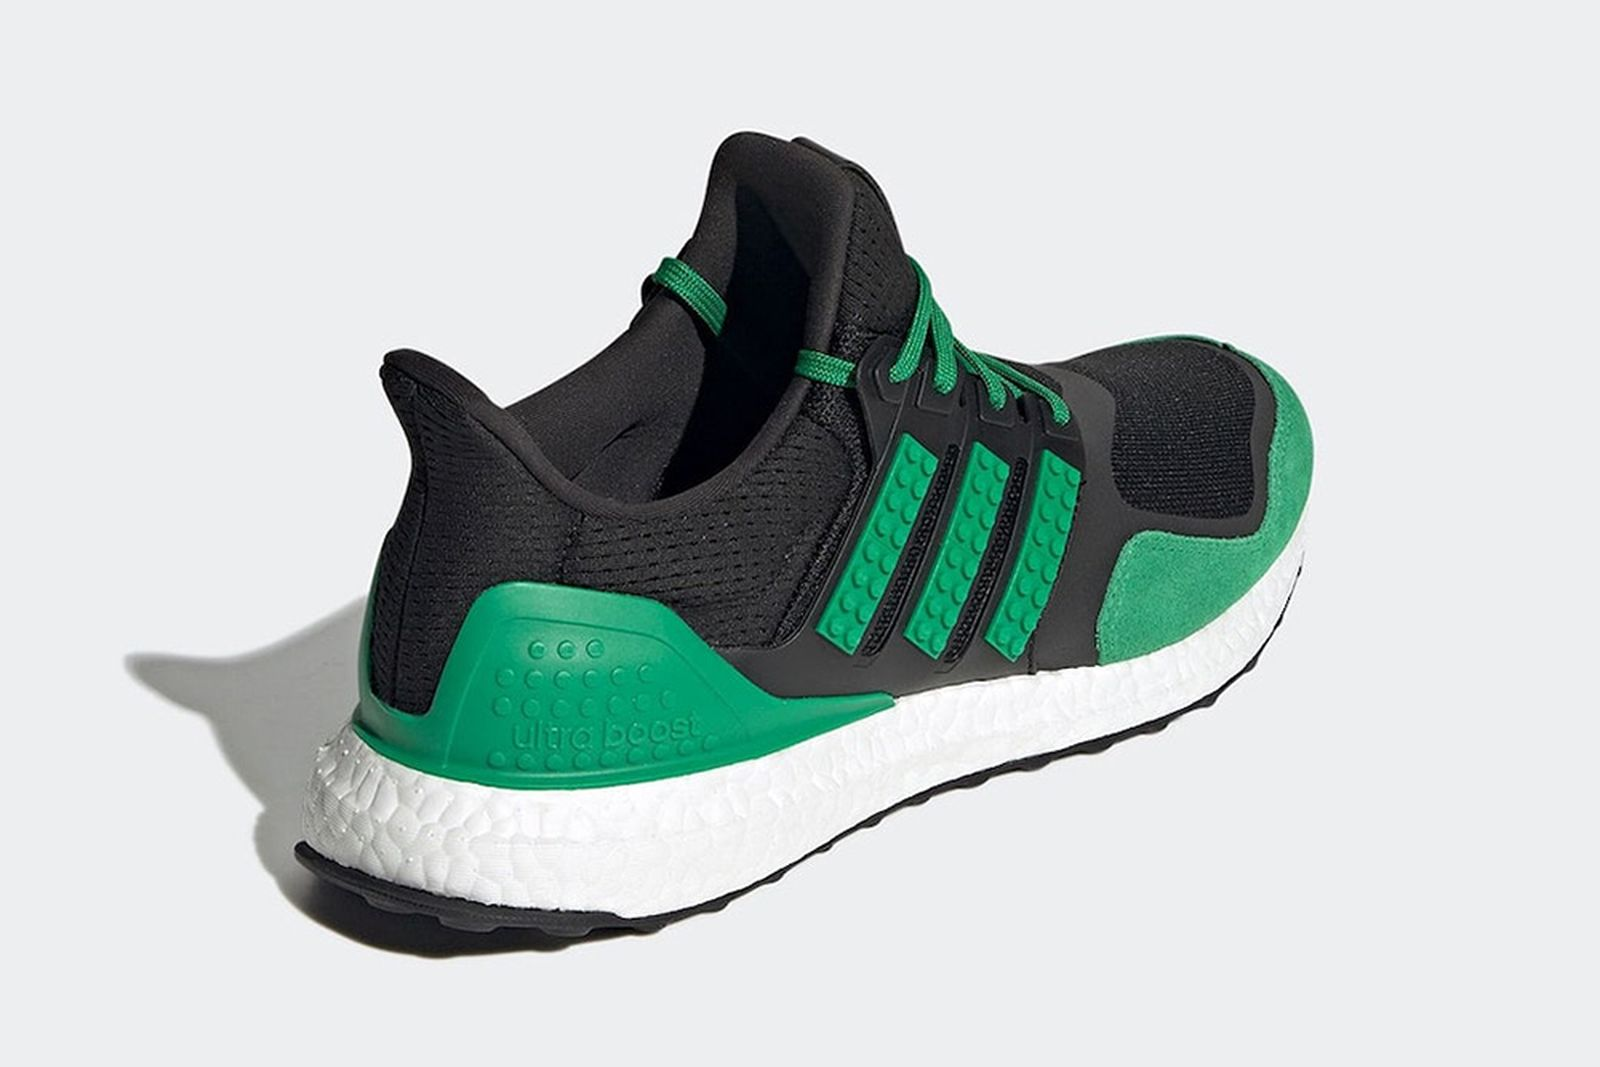 lego-adidas-ultraboost-color-pack-release-date-price-15